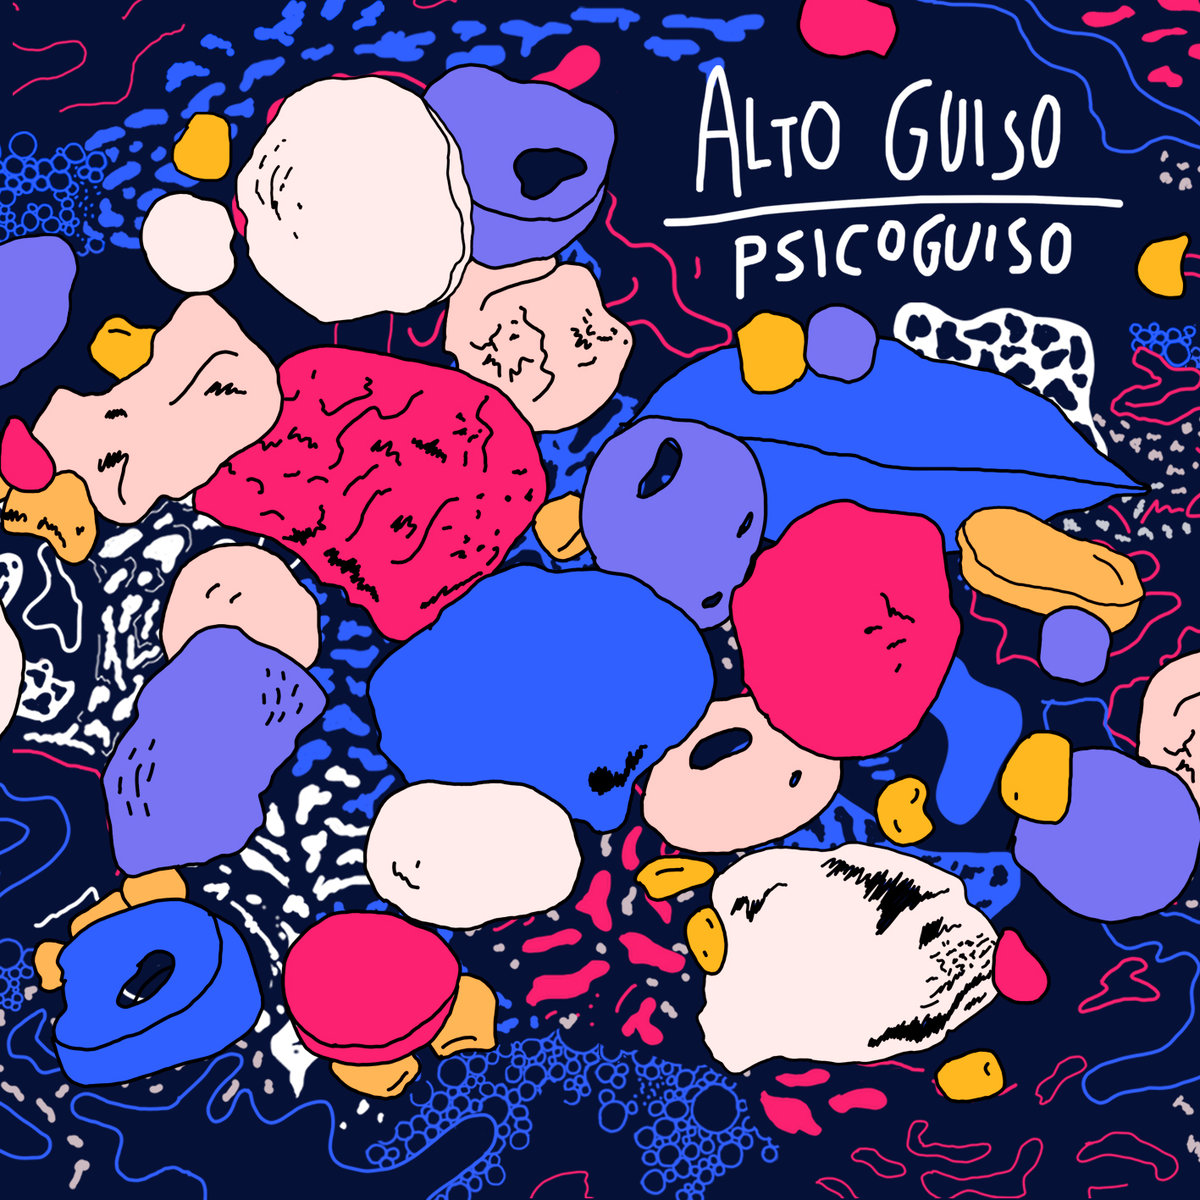 Psicoguiso